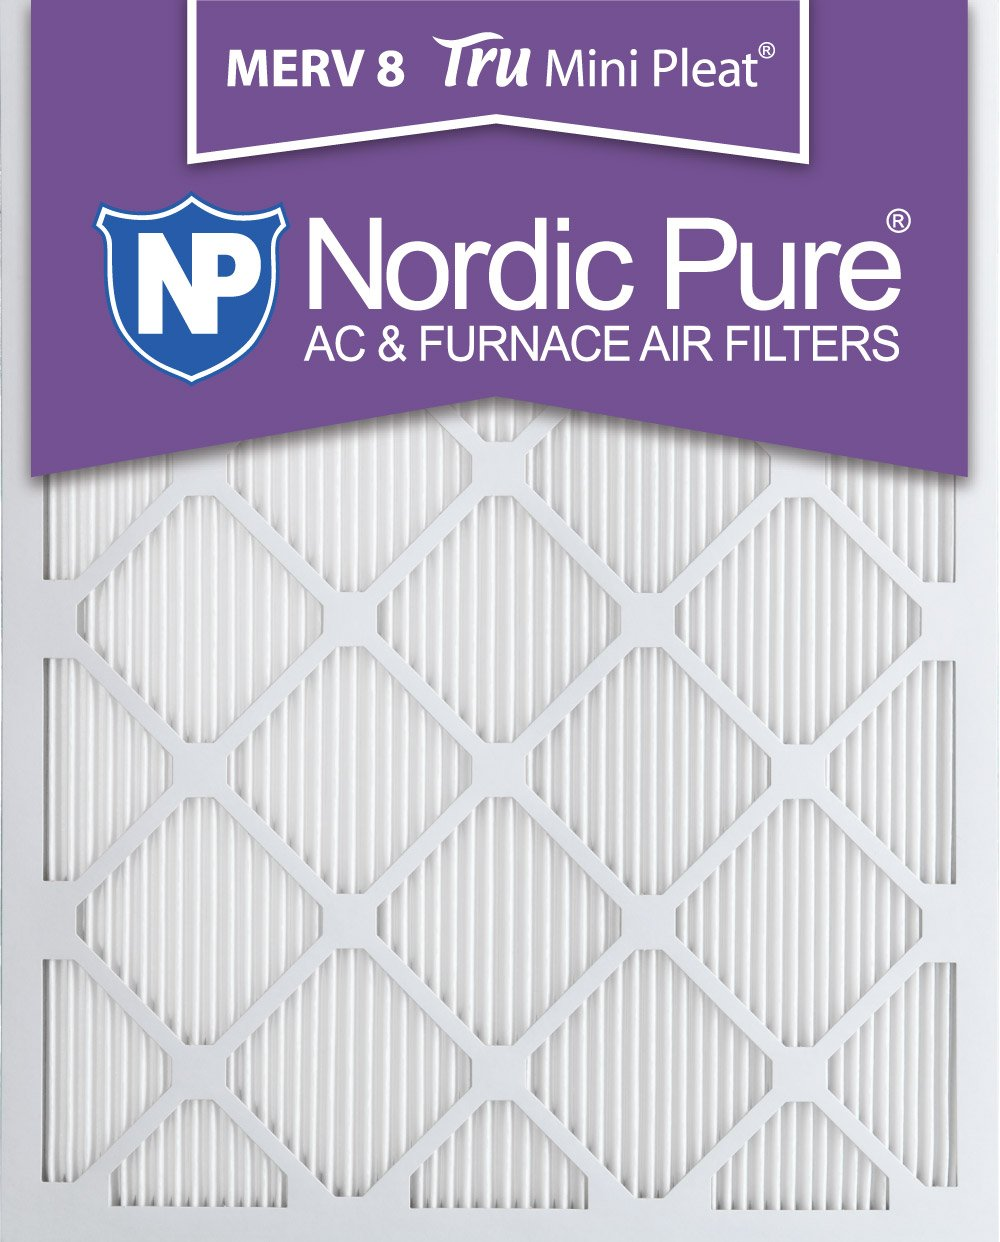 Nordic Pure 16 x 20 x 1 m8minipleat-3 Tru Mini Pleat Merv 8 AC炉エアフィルタ3パック、16